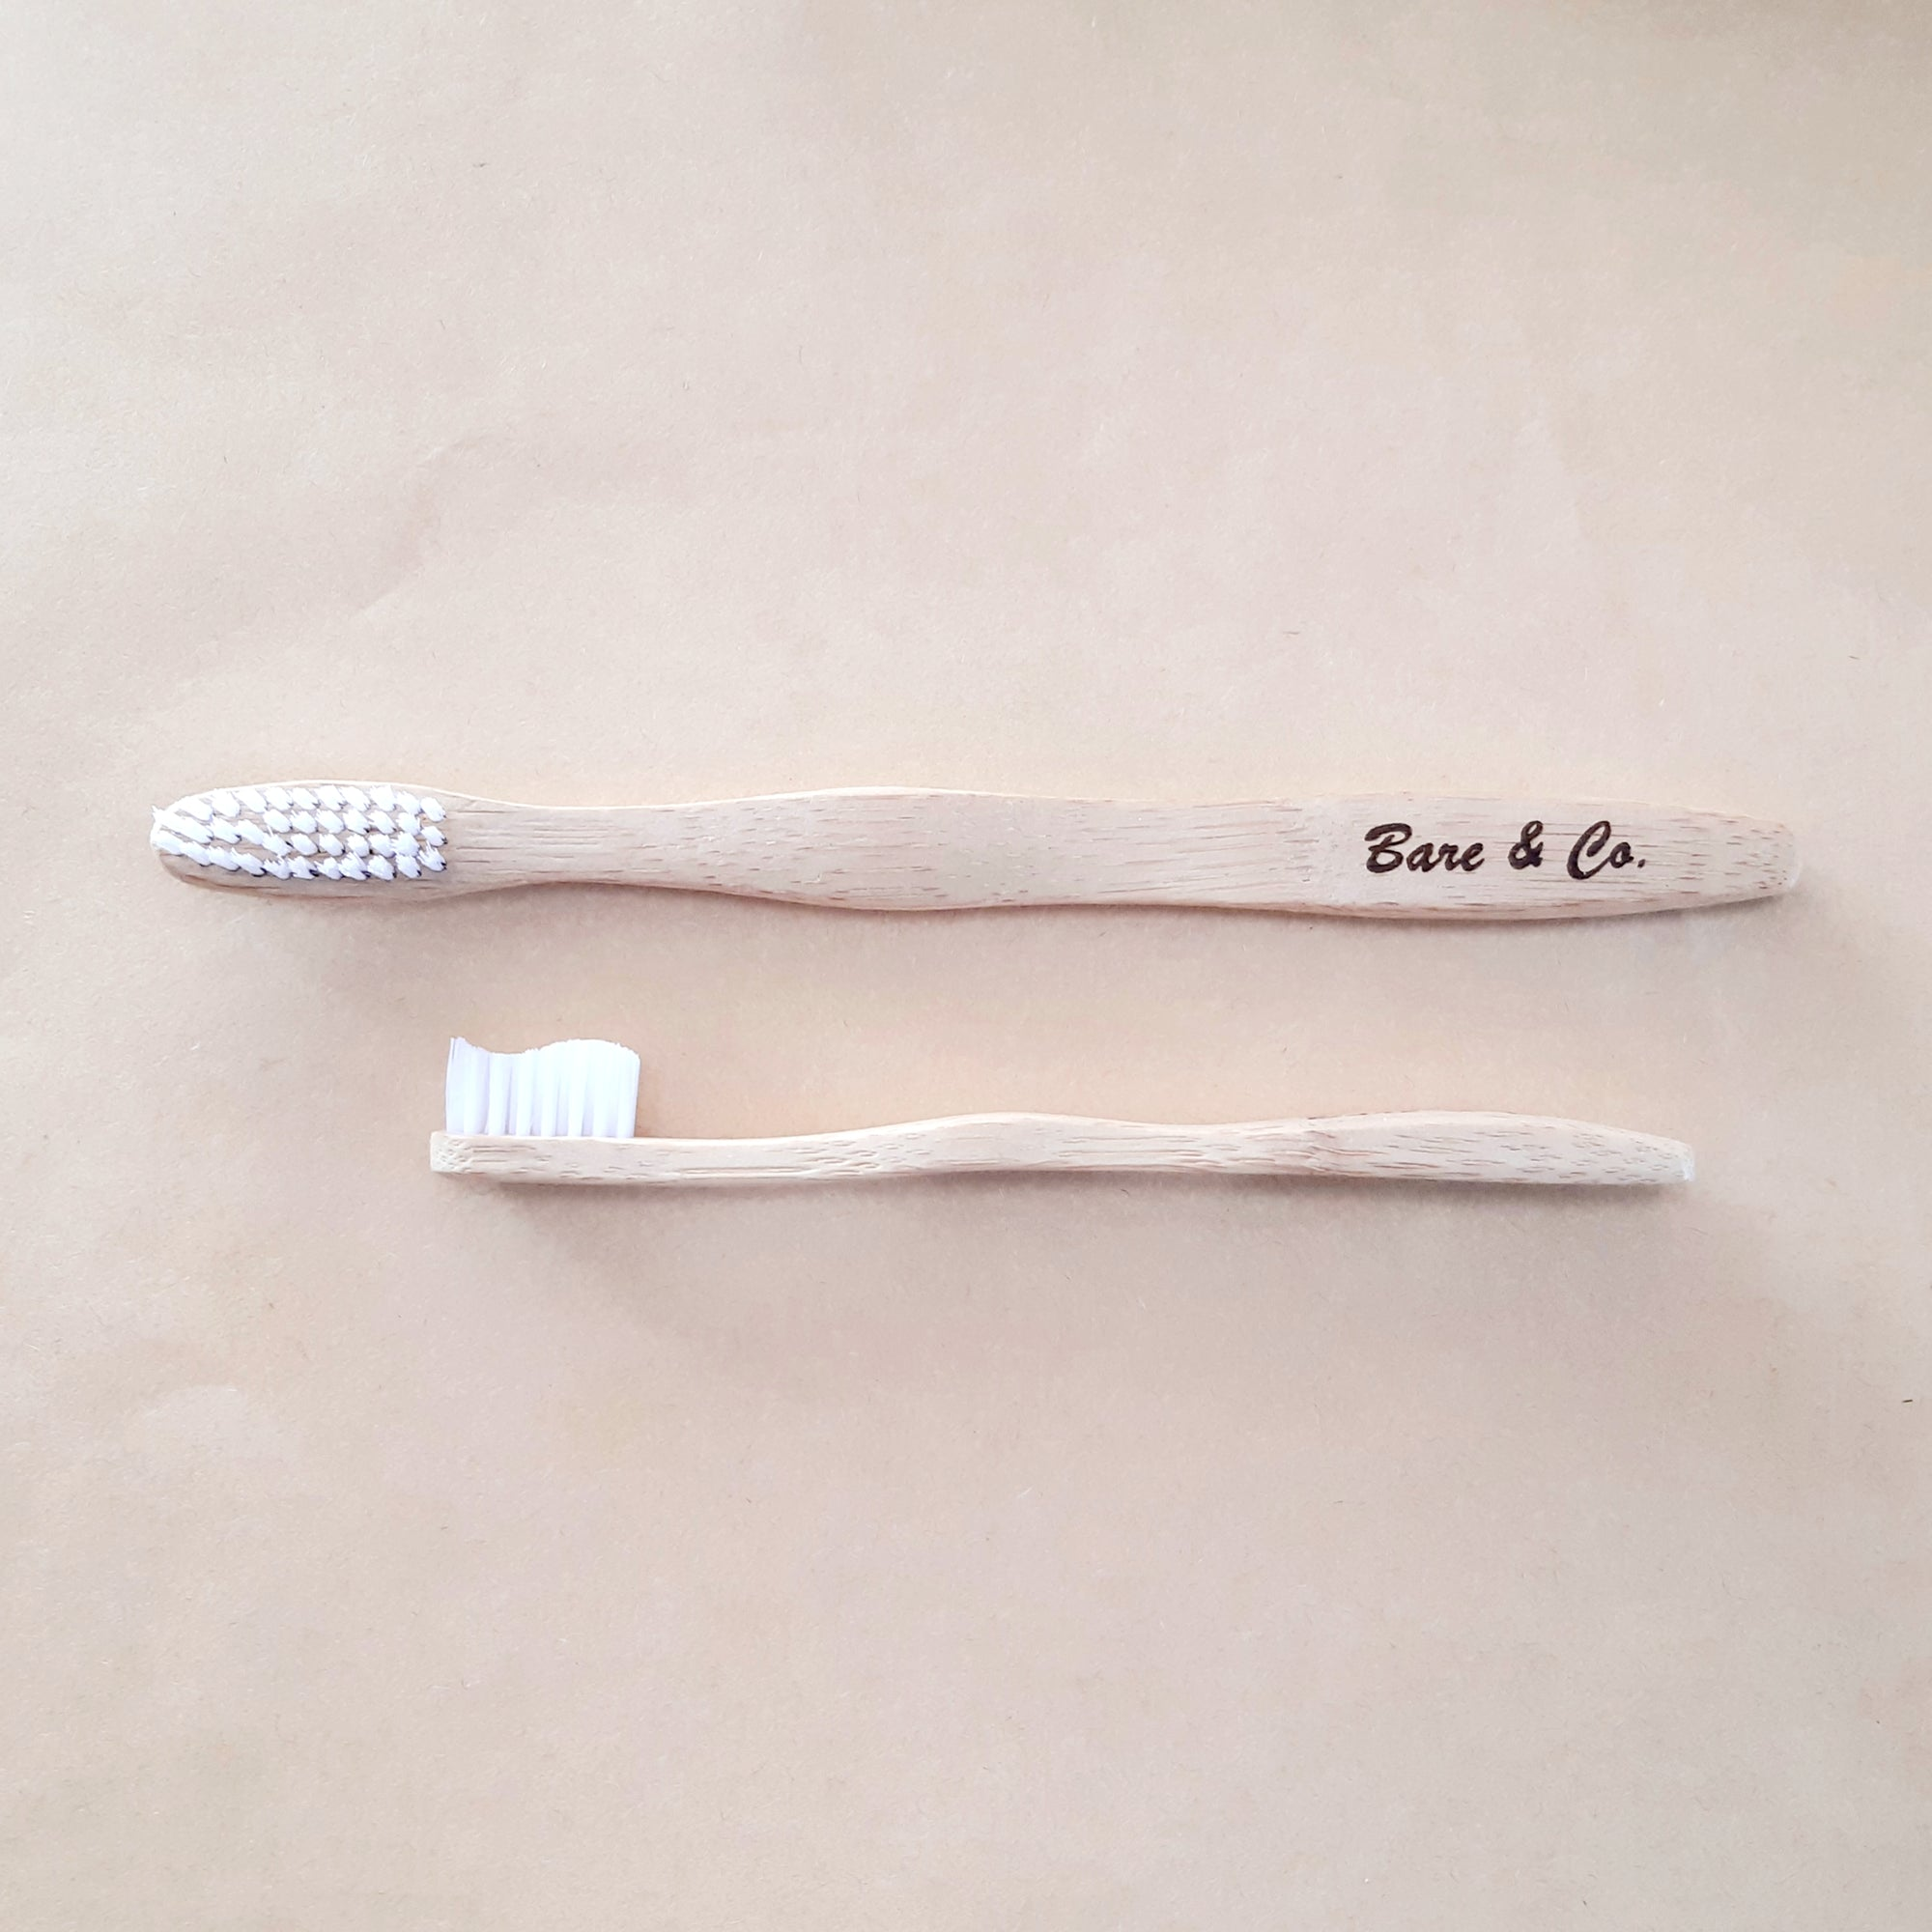 Bare & Co. Bamboo Toothbrush